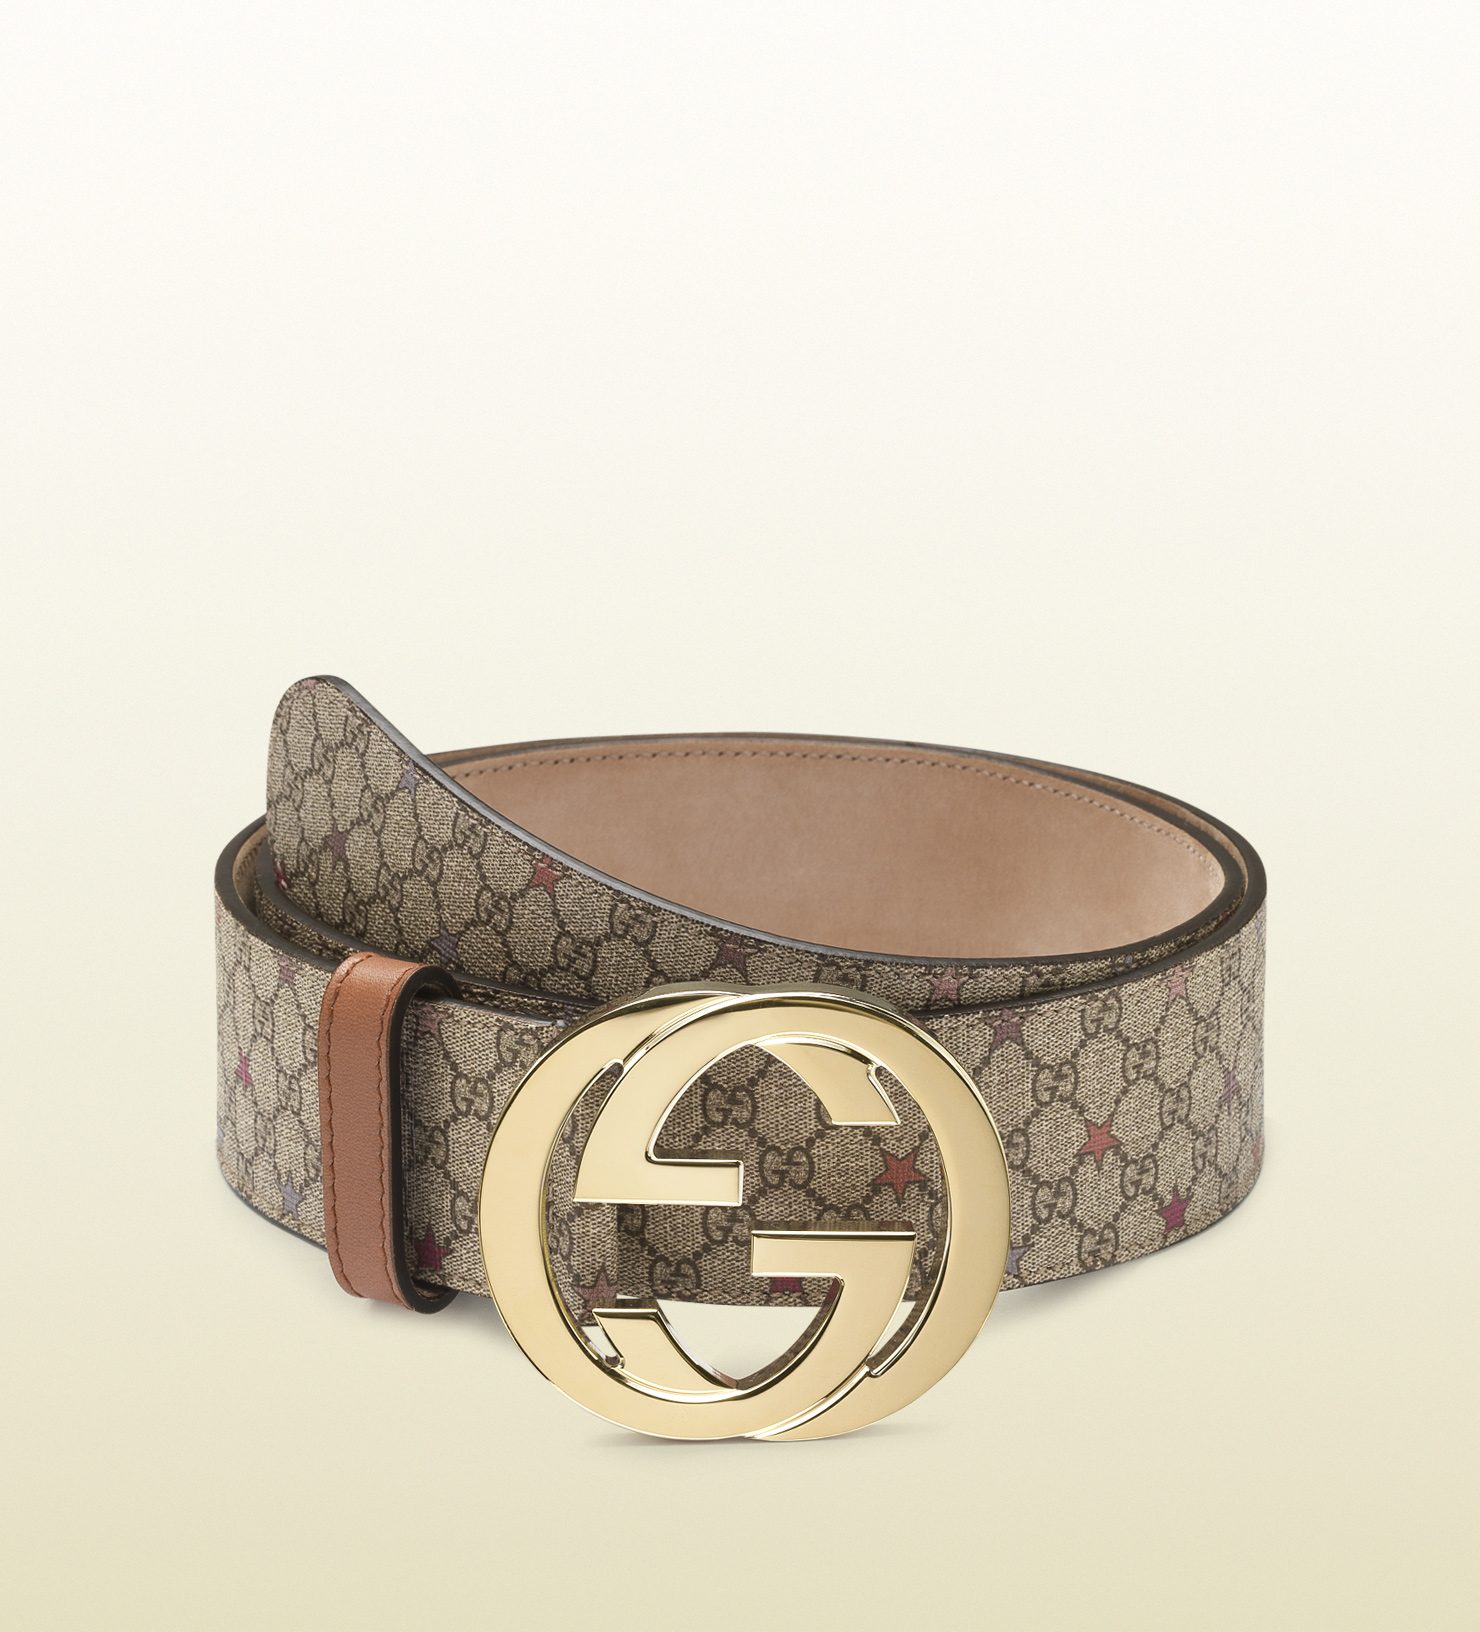 490e0f32a Gucci Supreme Canvas Belt with Interlocking G Buckle in Brown - Lyst